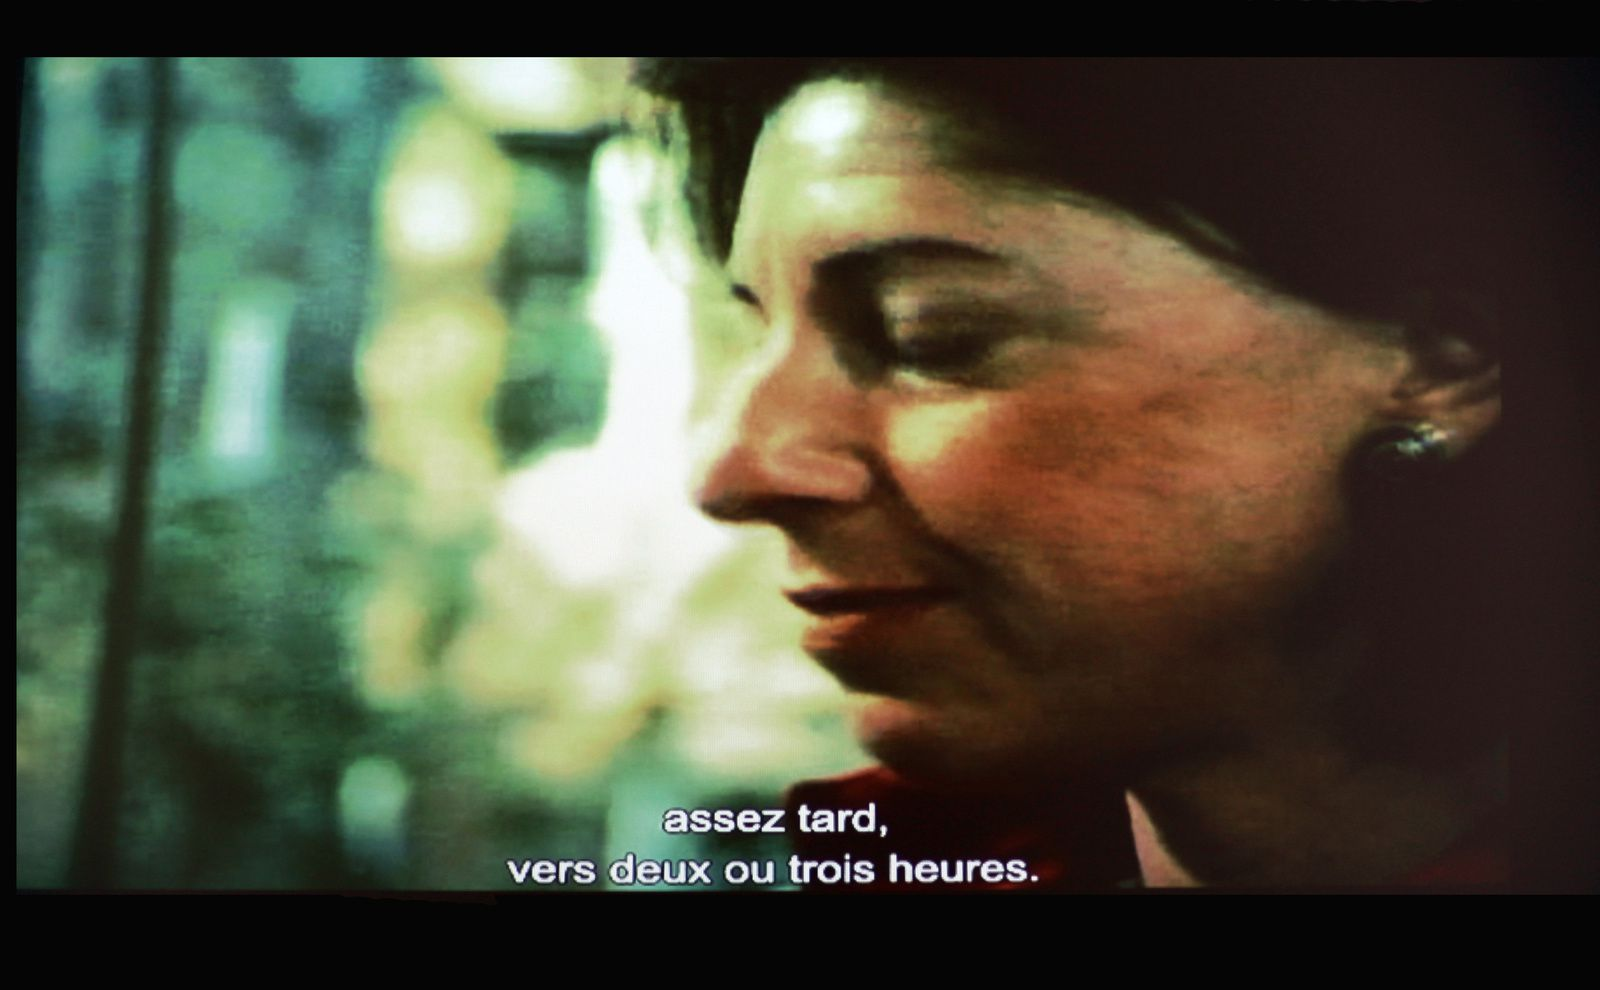 """Photo Tiré du film """"FRANKENTHALER: Toward a New Climate"""", 1978 directed by Perry Miller Adato - Courtsey WNET, New York. © Photo Éric Simon"""